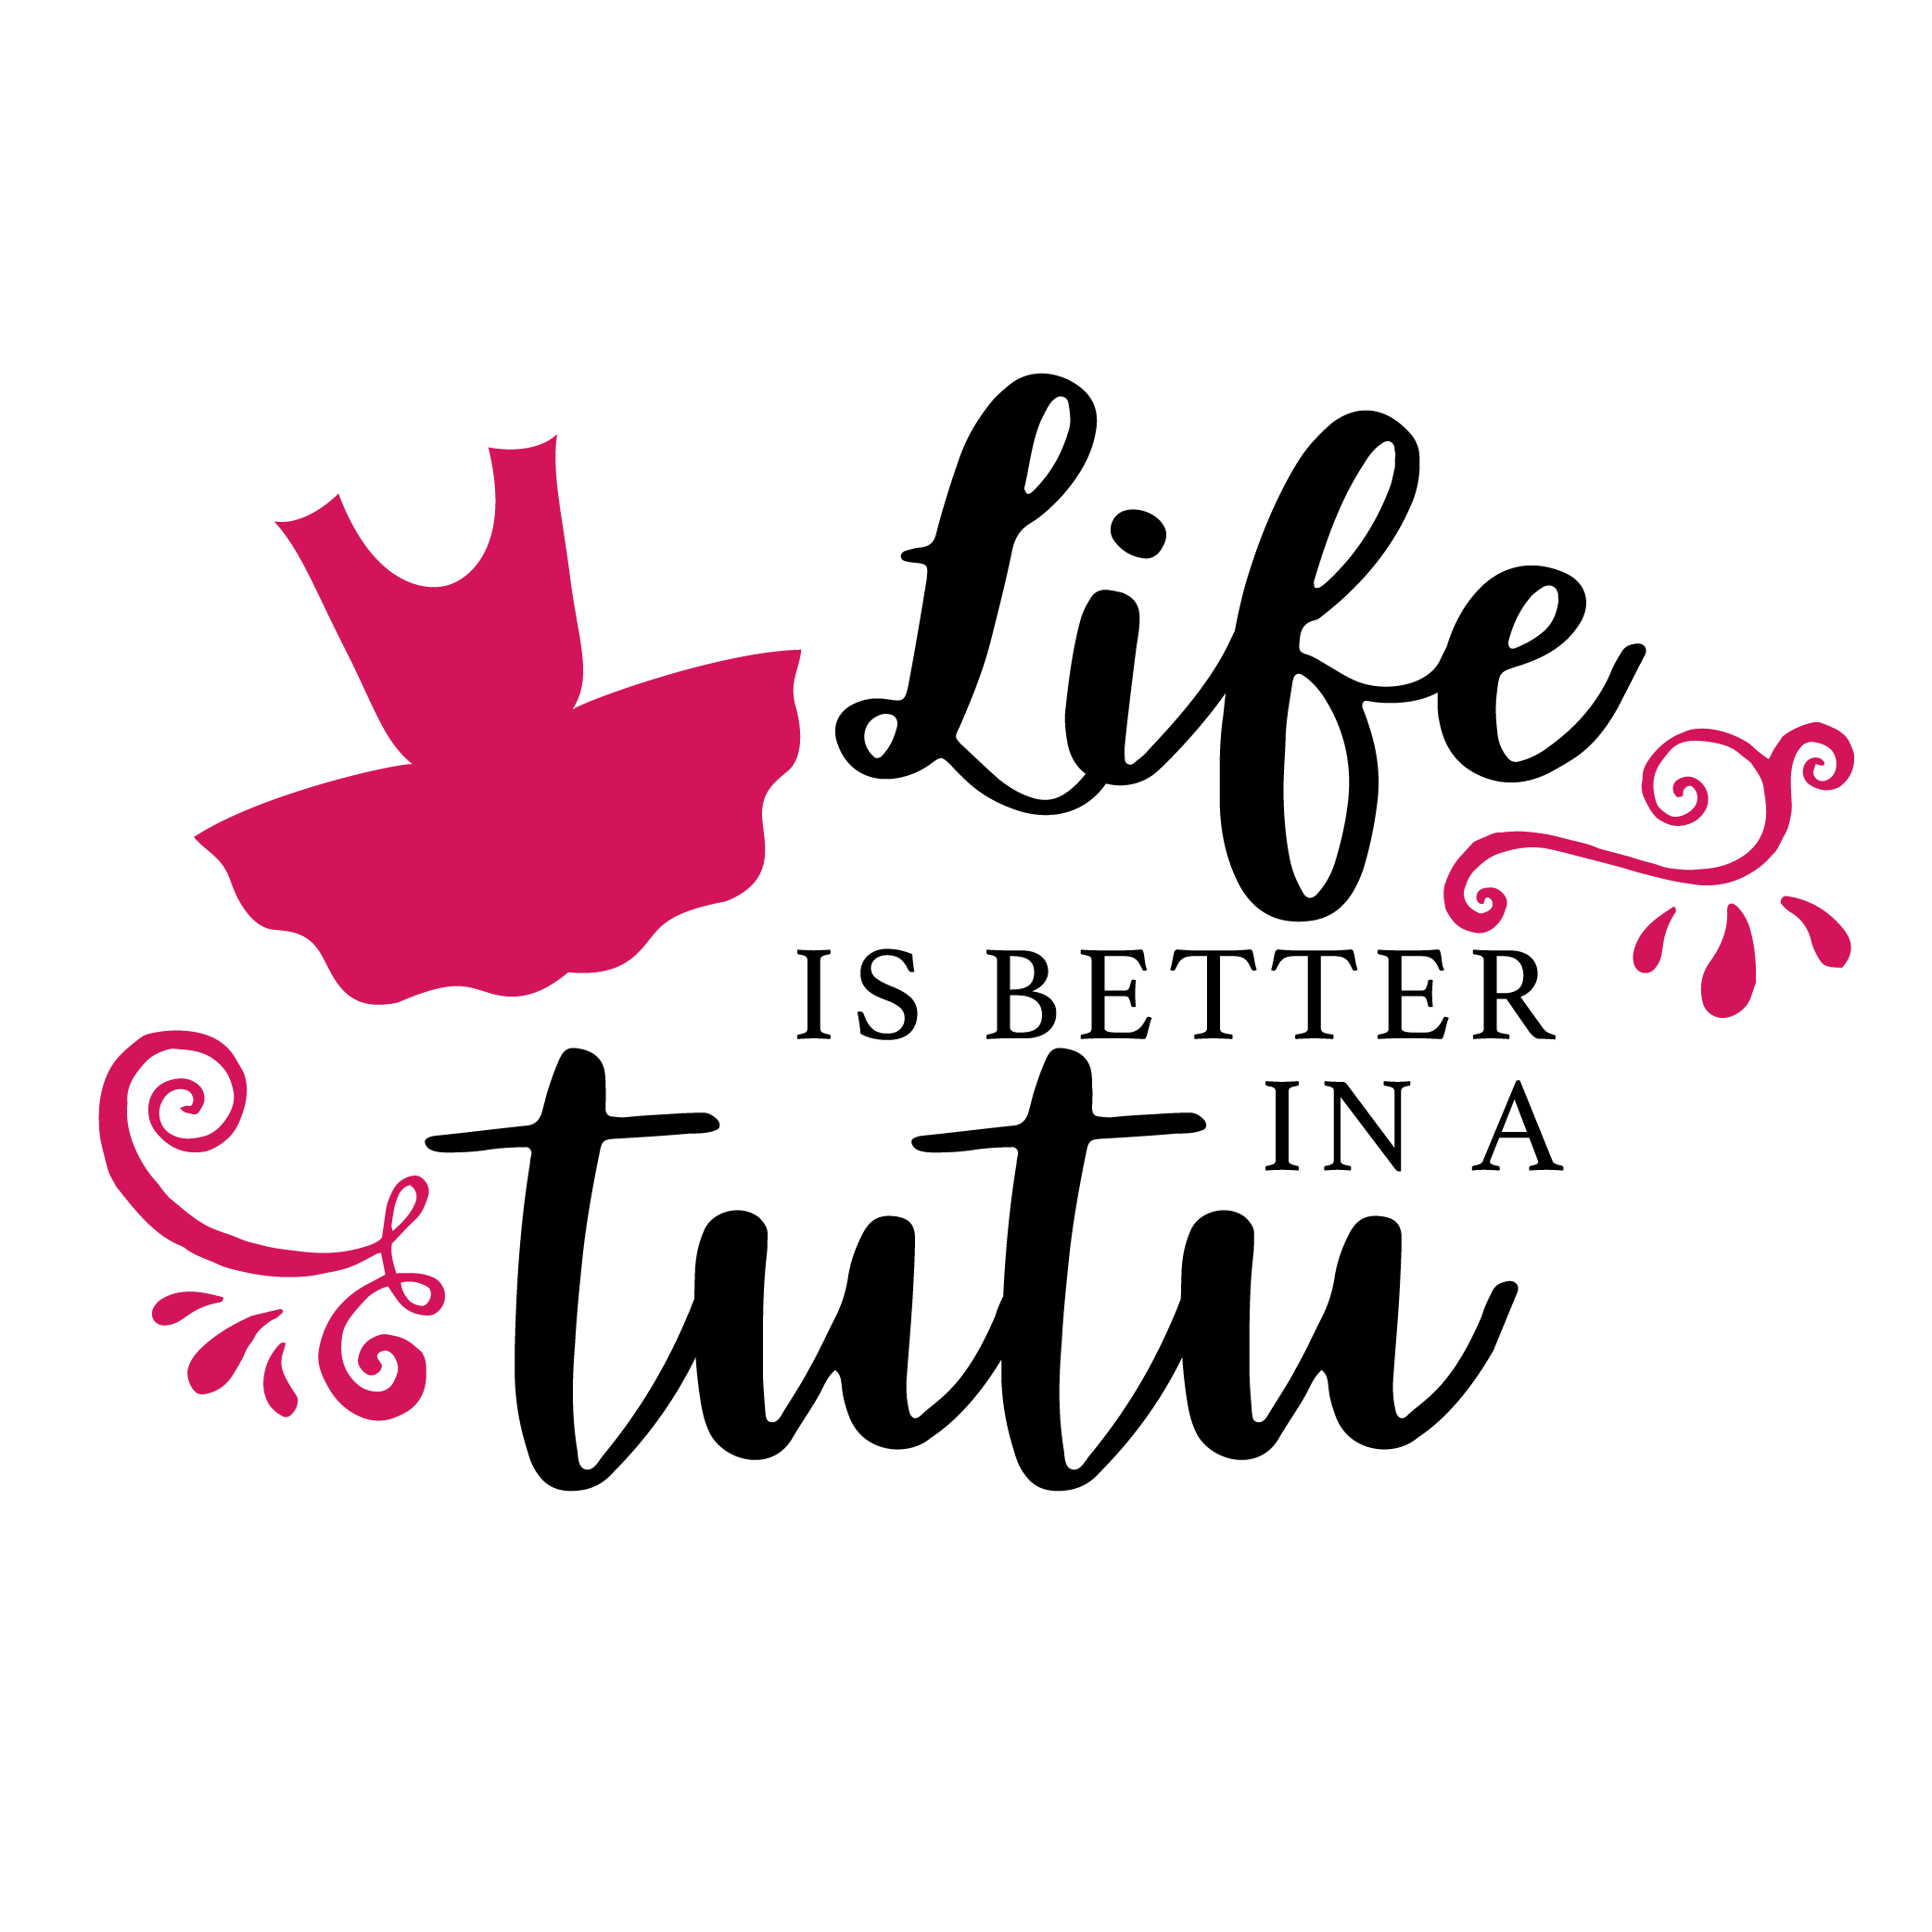 Free png files for cricut. Svg download gallery by